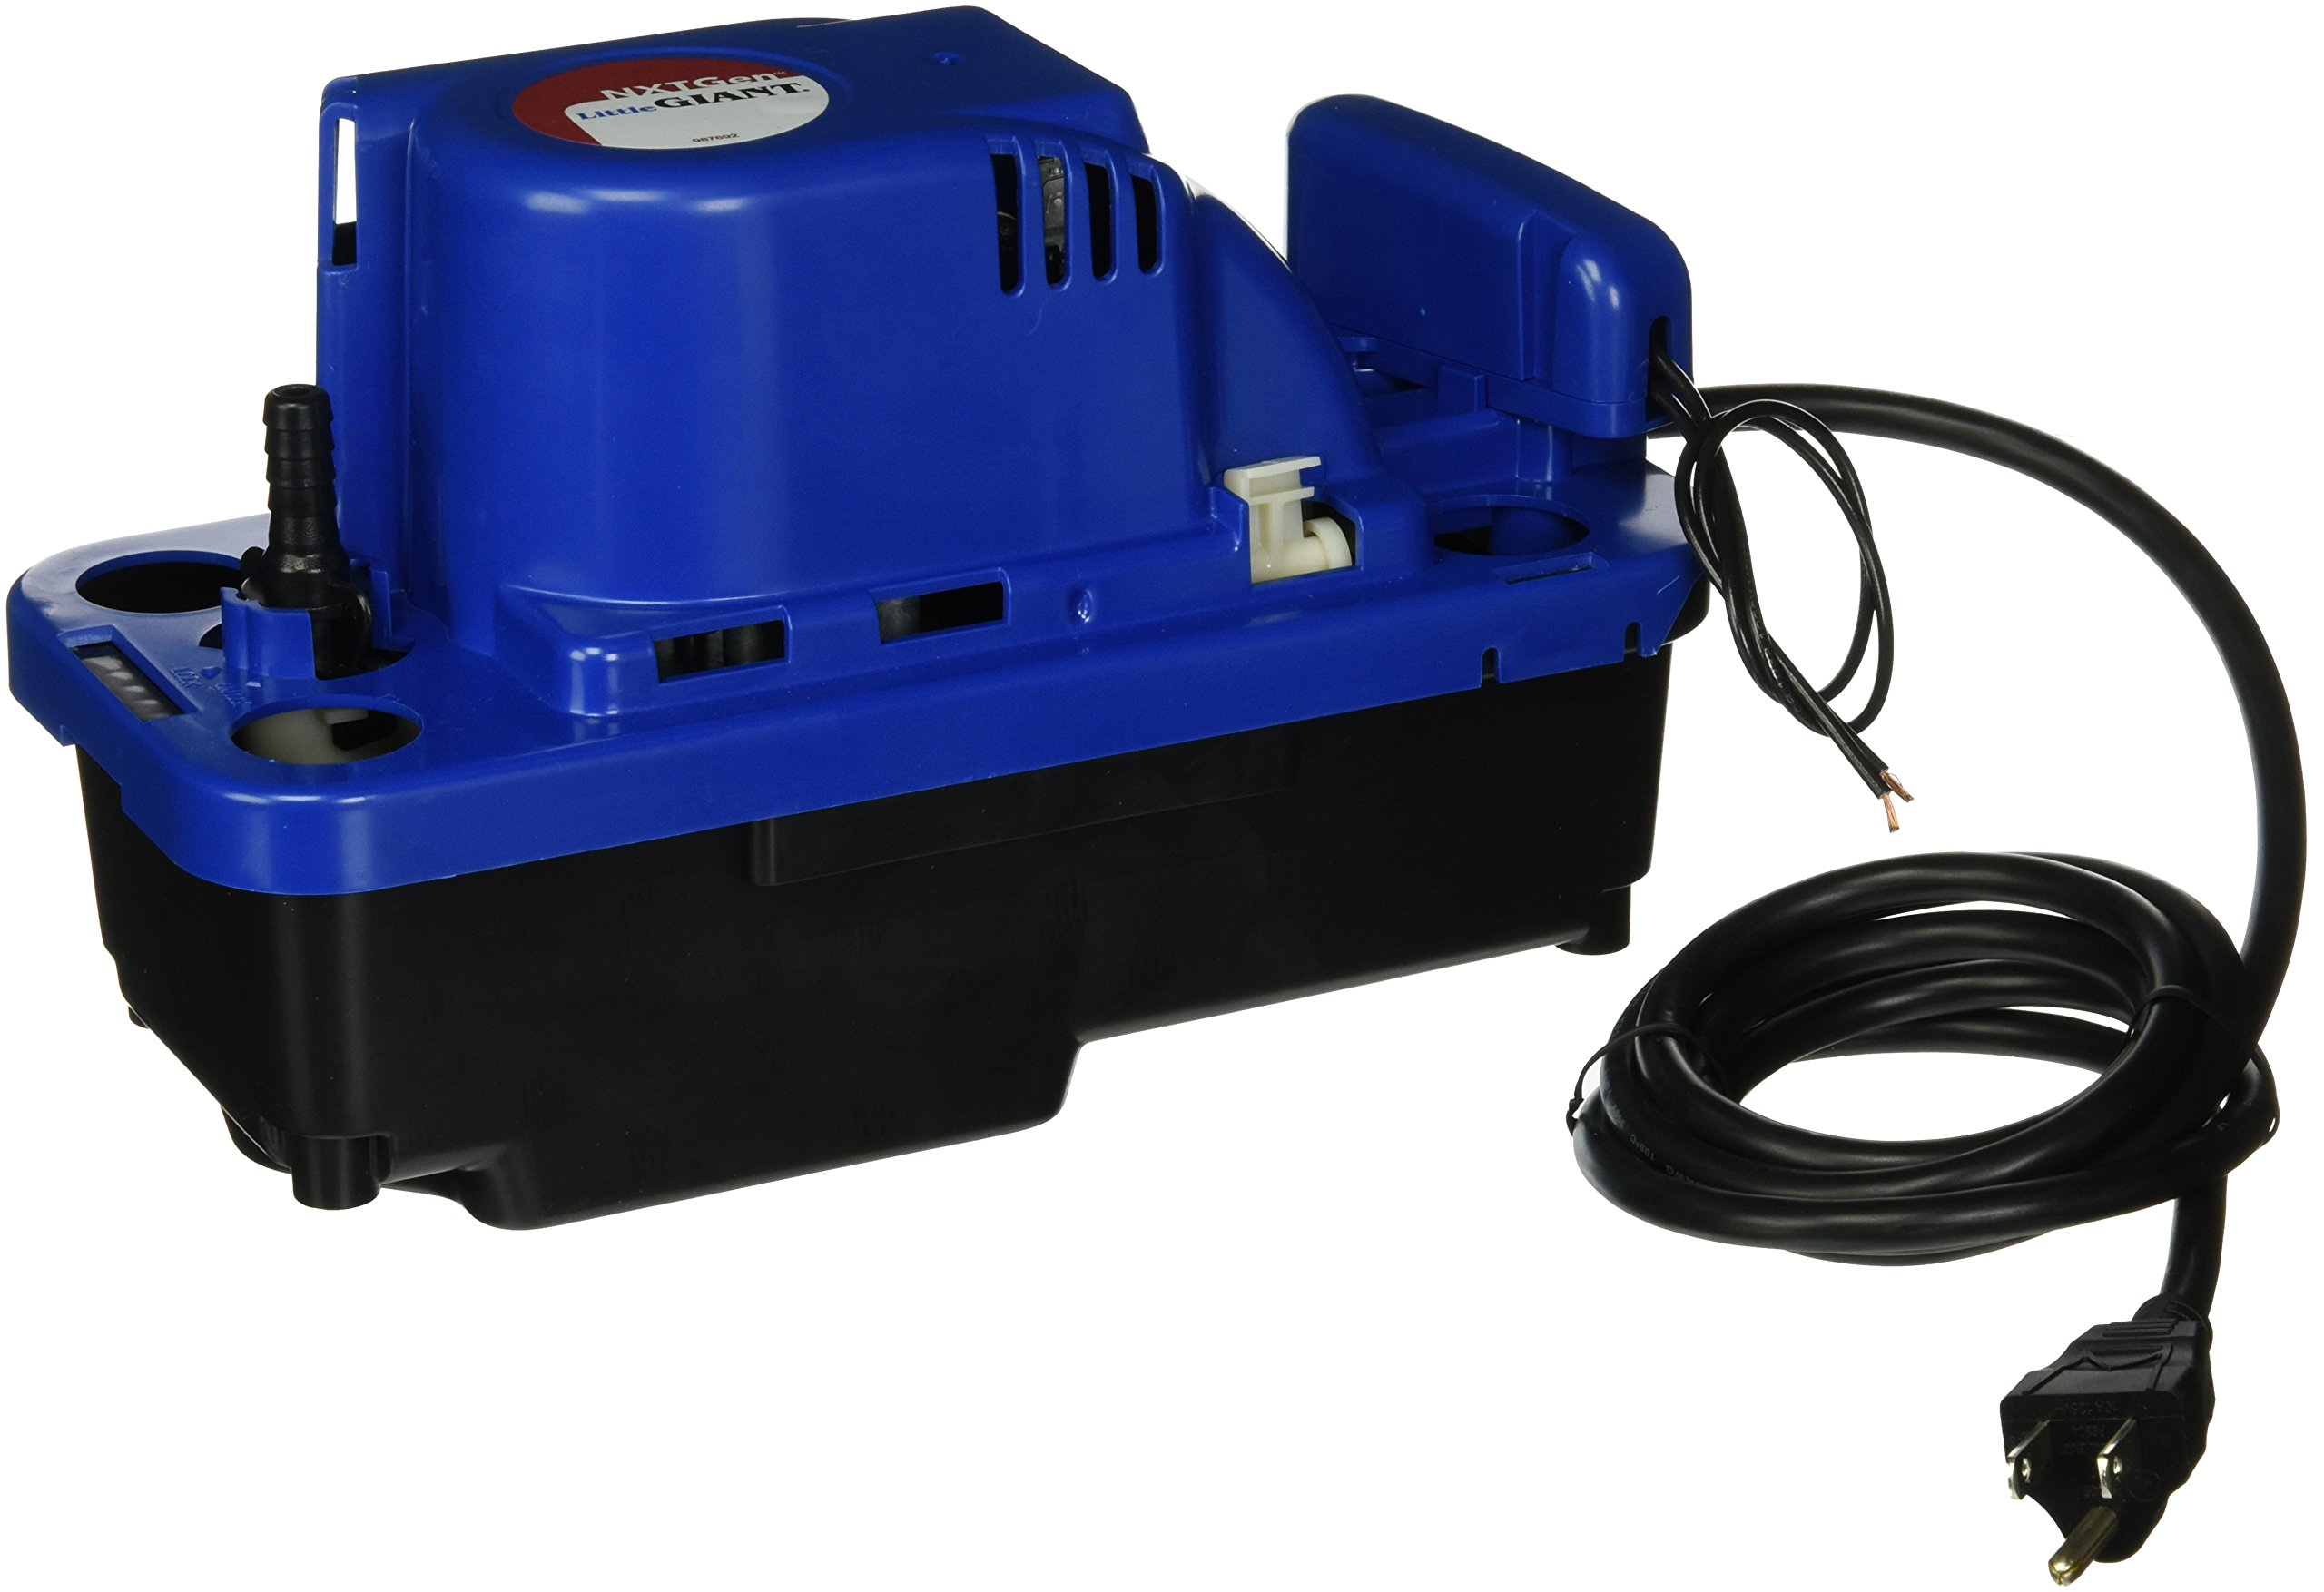 Little Giant 554542 VCMX-20ULS-C 84 GPH 115V Automatic Condensate Removal Pump by LITTLE GIANT